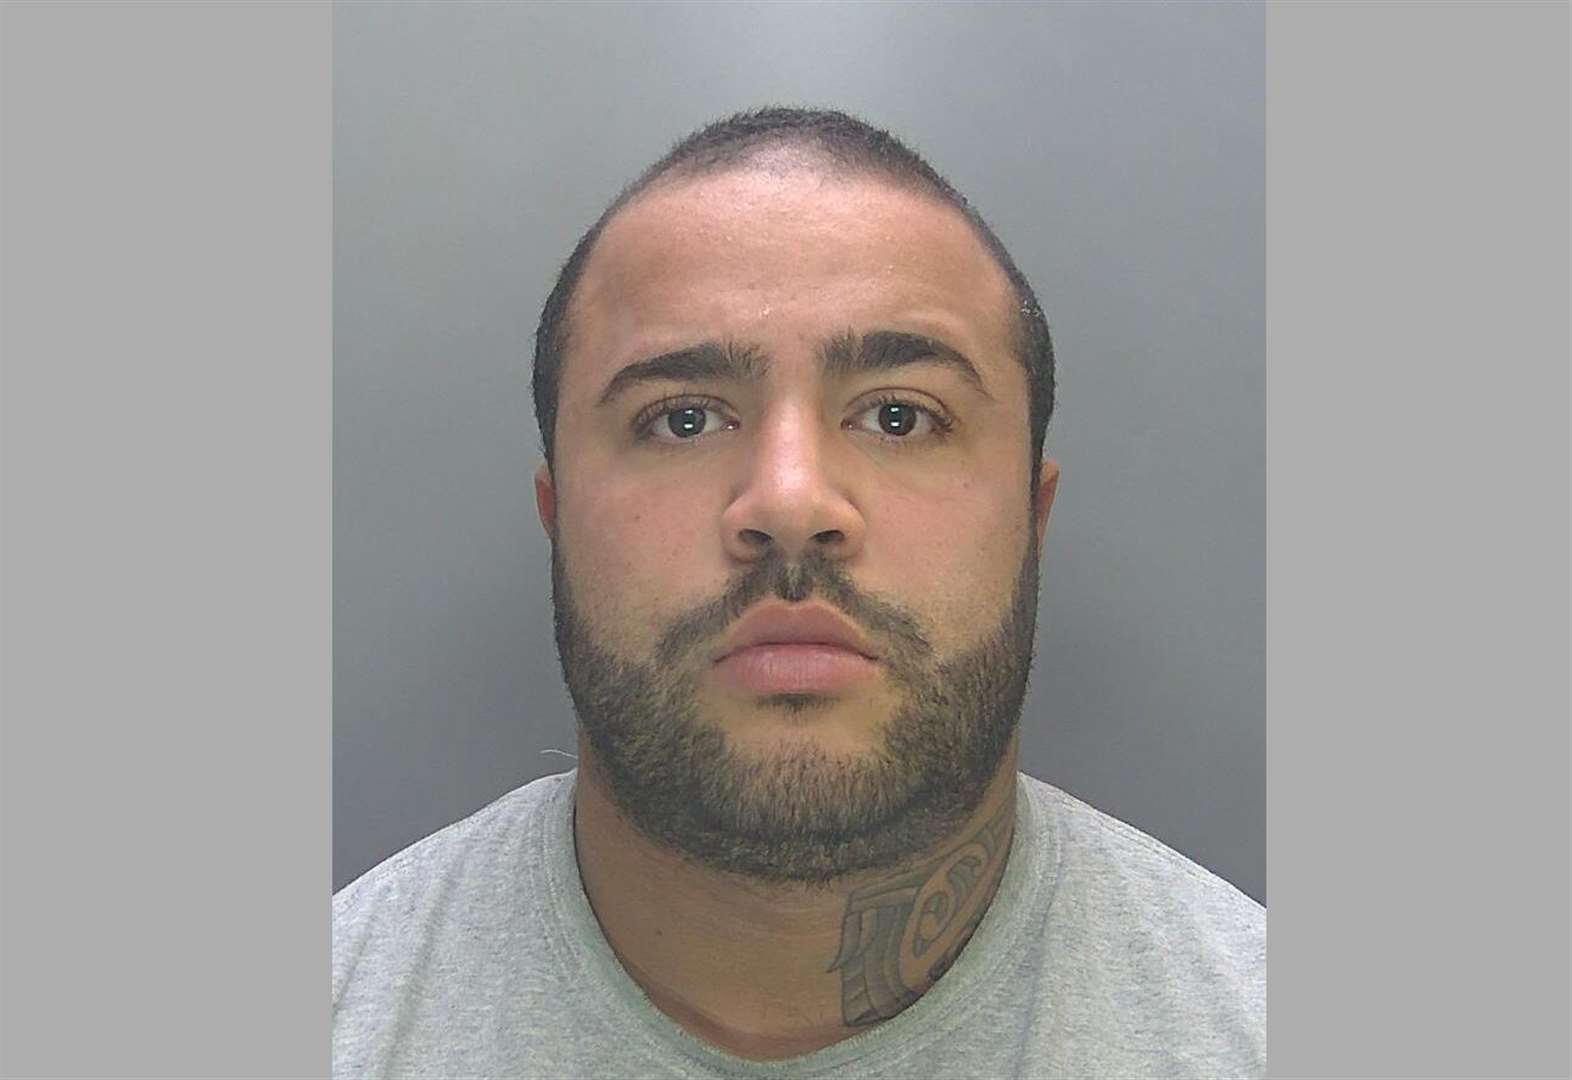 Beck Row man who strangled his ex-girlfriend until she fell unconscious has been jailed